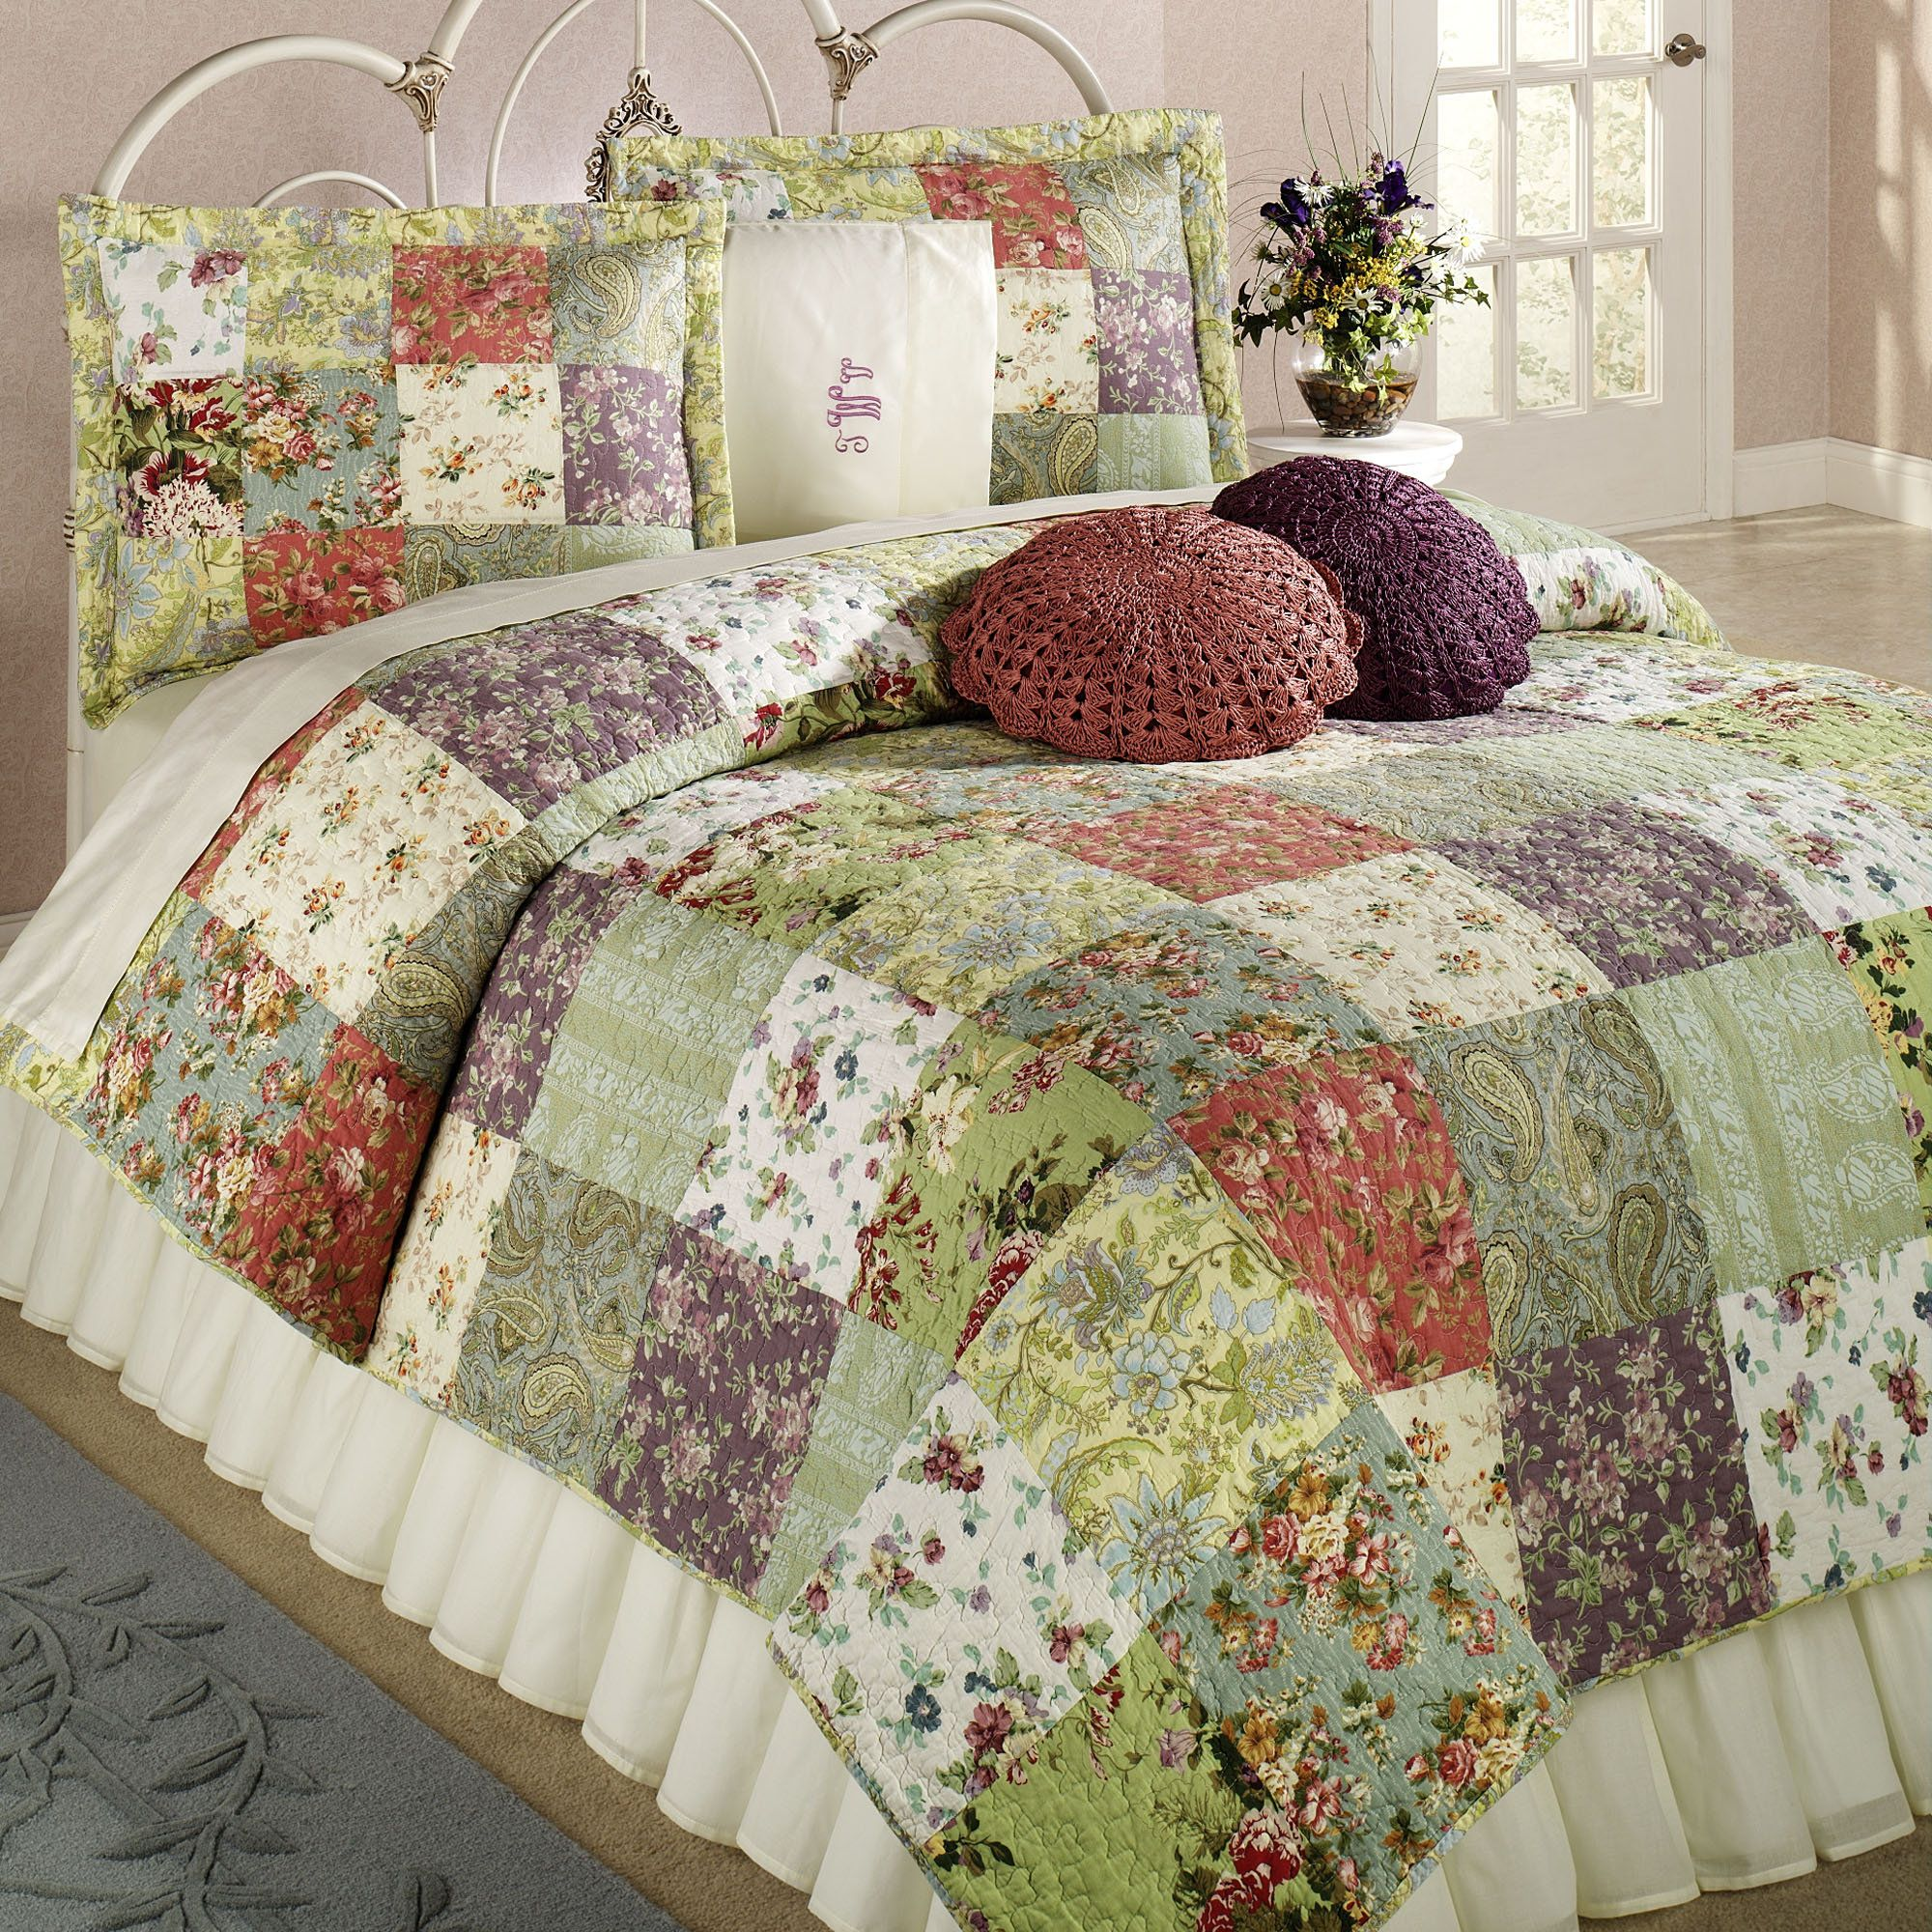 Bed Quilting Designs Of Blooming Prairie Cotton Patchwork Quilt Set Bedding